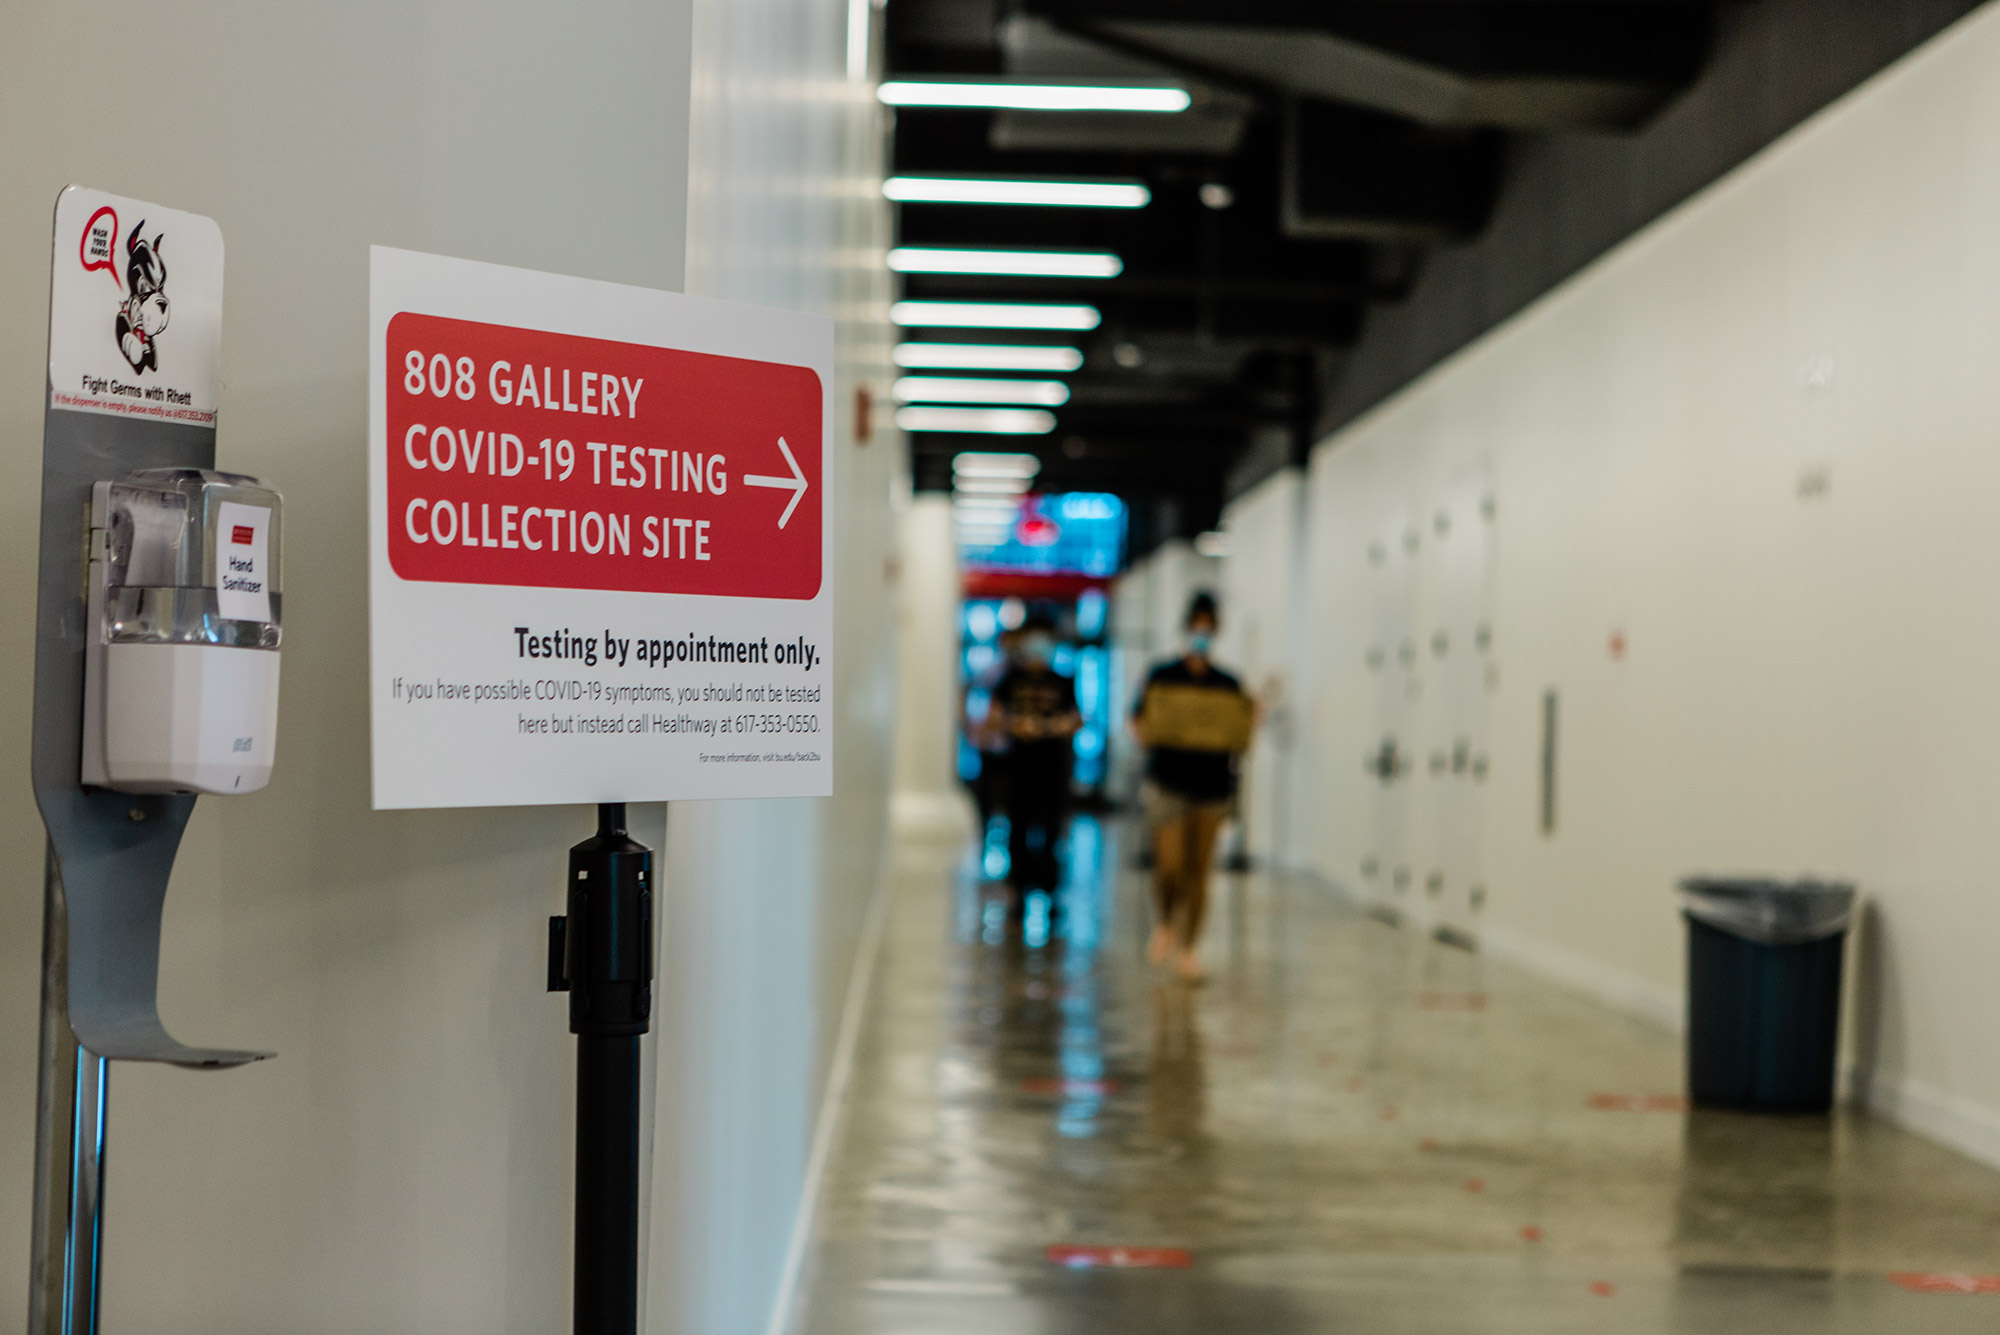 "Photo from inside the Covid-19 collection site at 808 Commonwealth Ave taken in August, 2020. A sign reads ""808 Gallery COVID-19 Testing Collection Site"" with a red arrow, below it reads ""testing by appointment only."" A hand sanitizing station is next to the sign, it has a photo of Rhett above it."